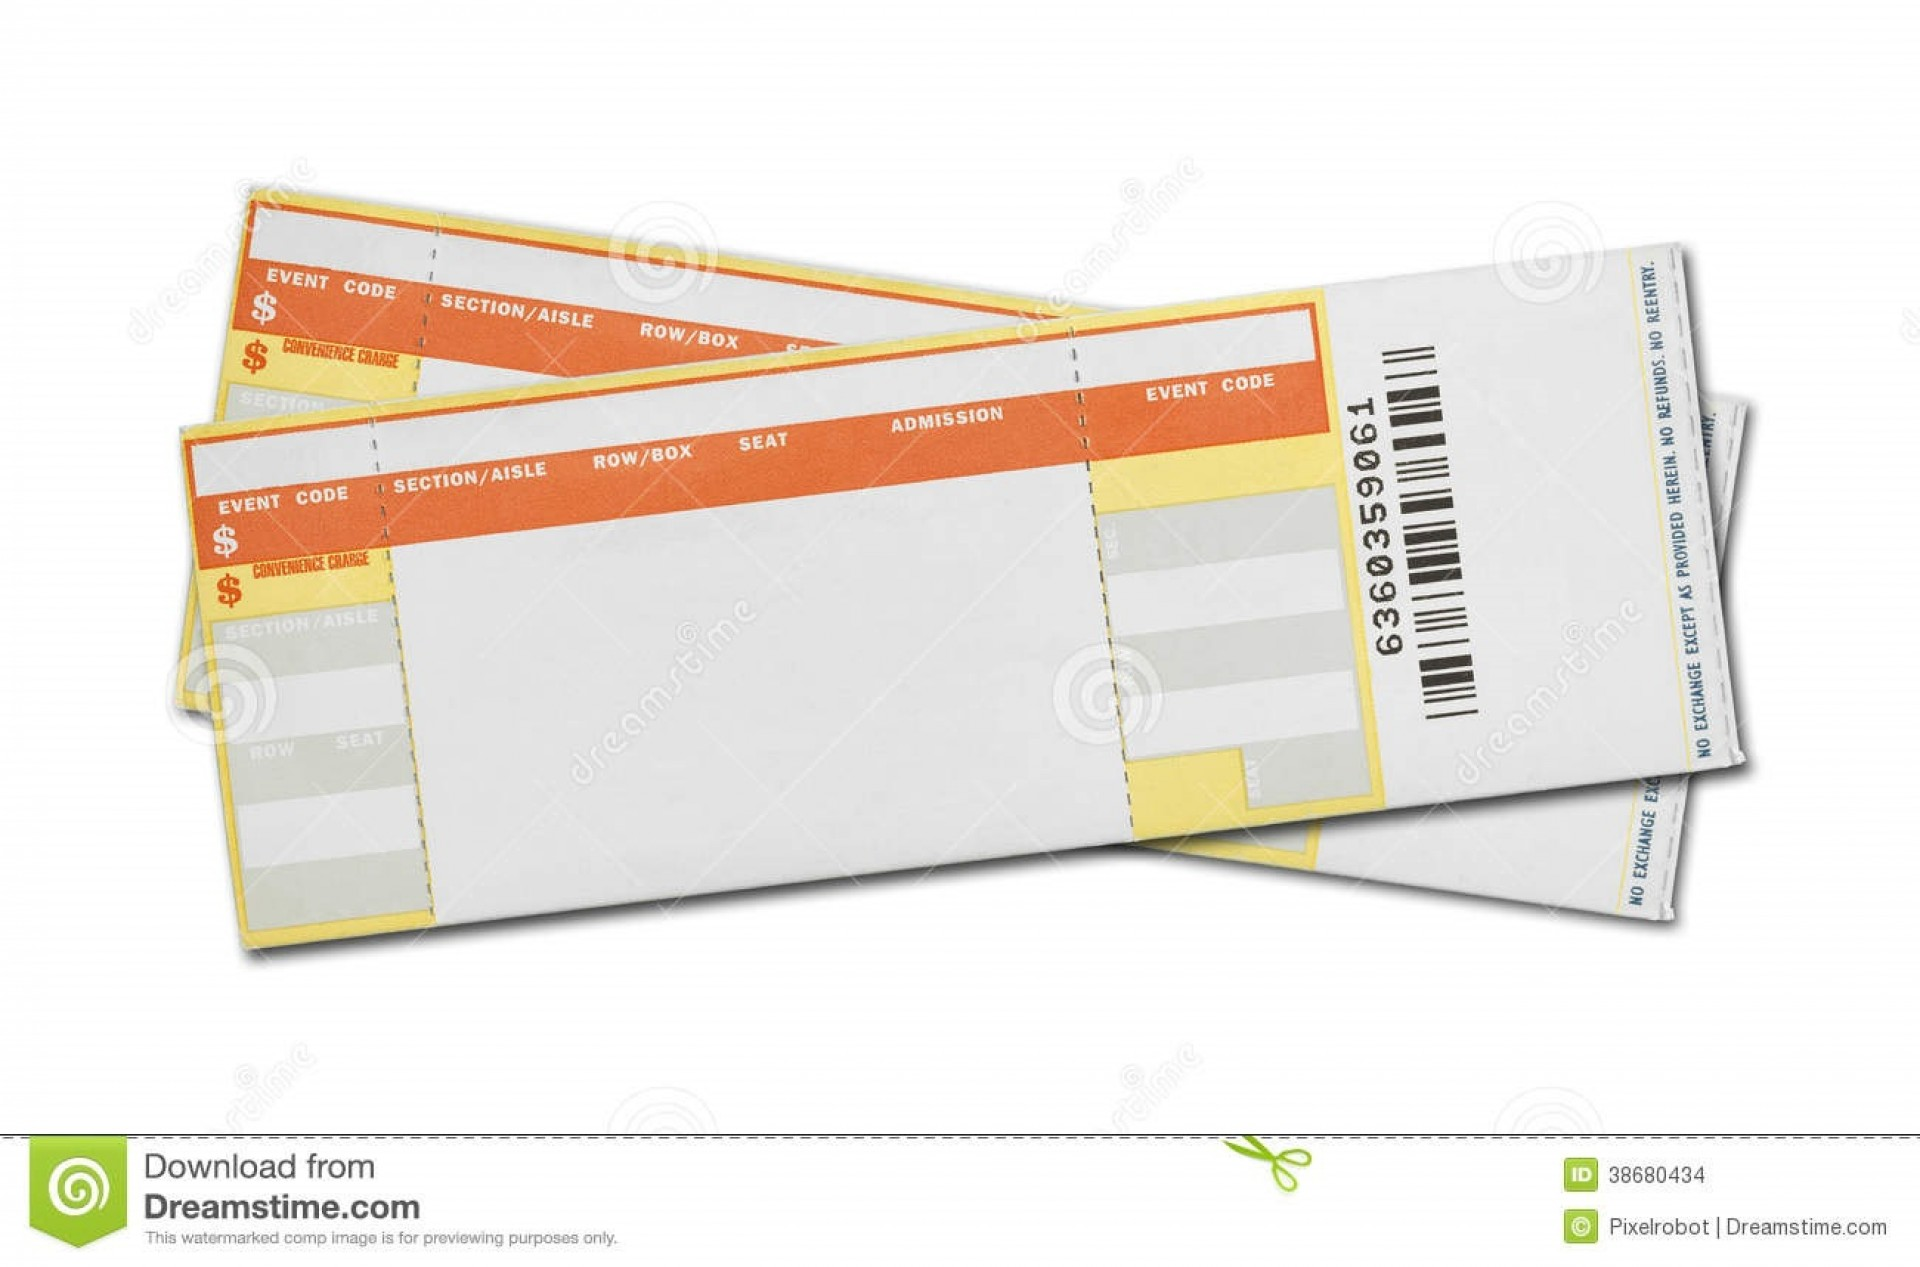 003 Formidable Free Concert Ticket Printable High Def  Template For Gift1920